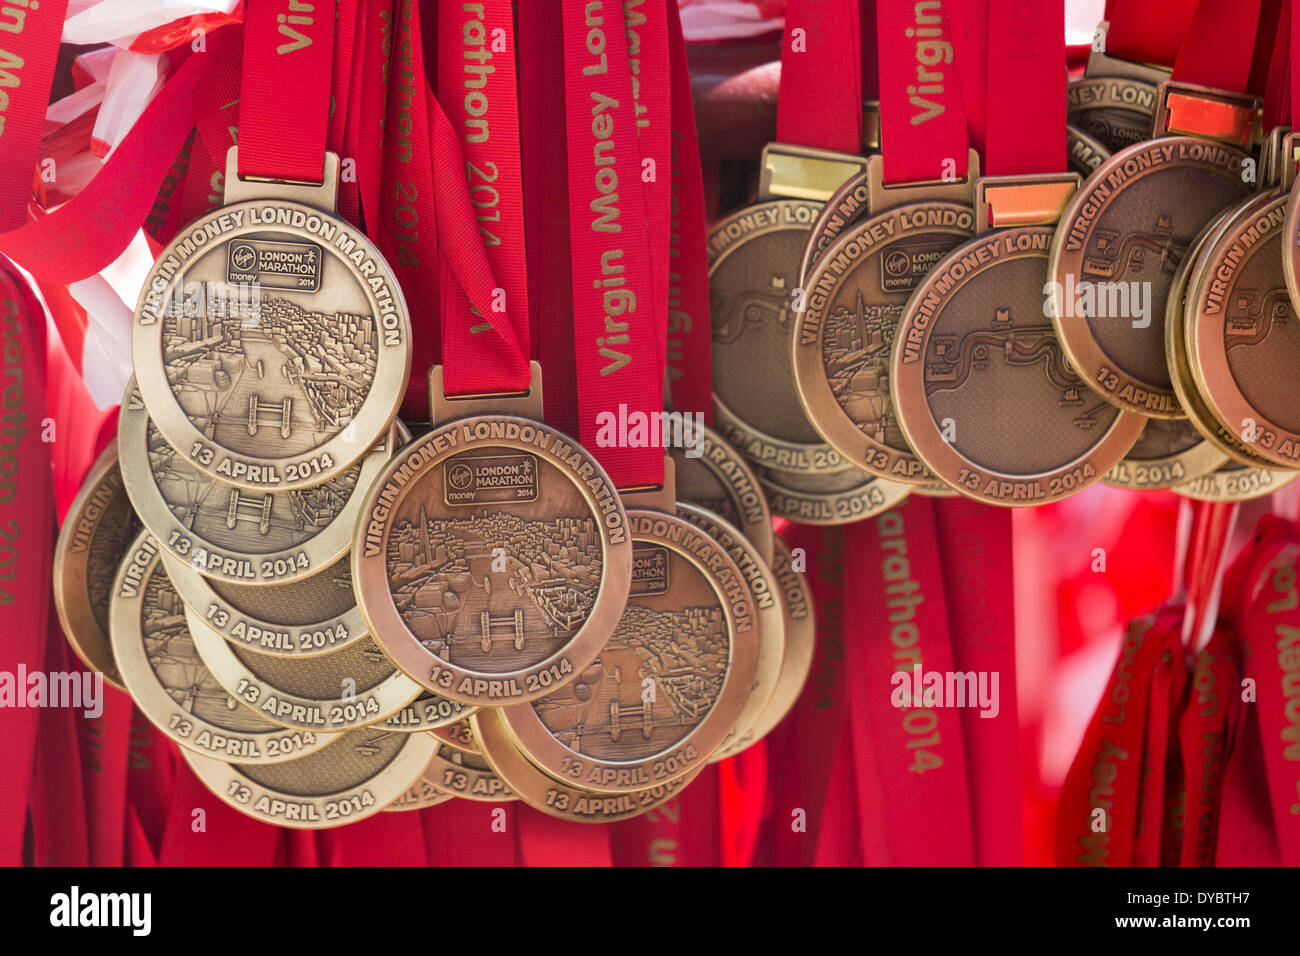 Mcm Expo Stands For : Finishers medal stock photos